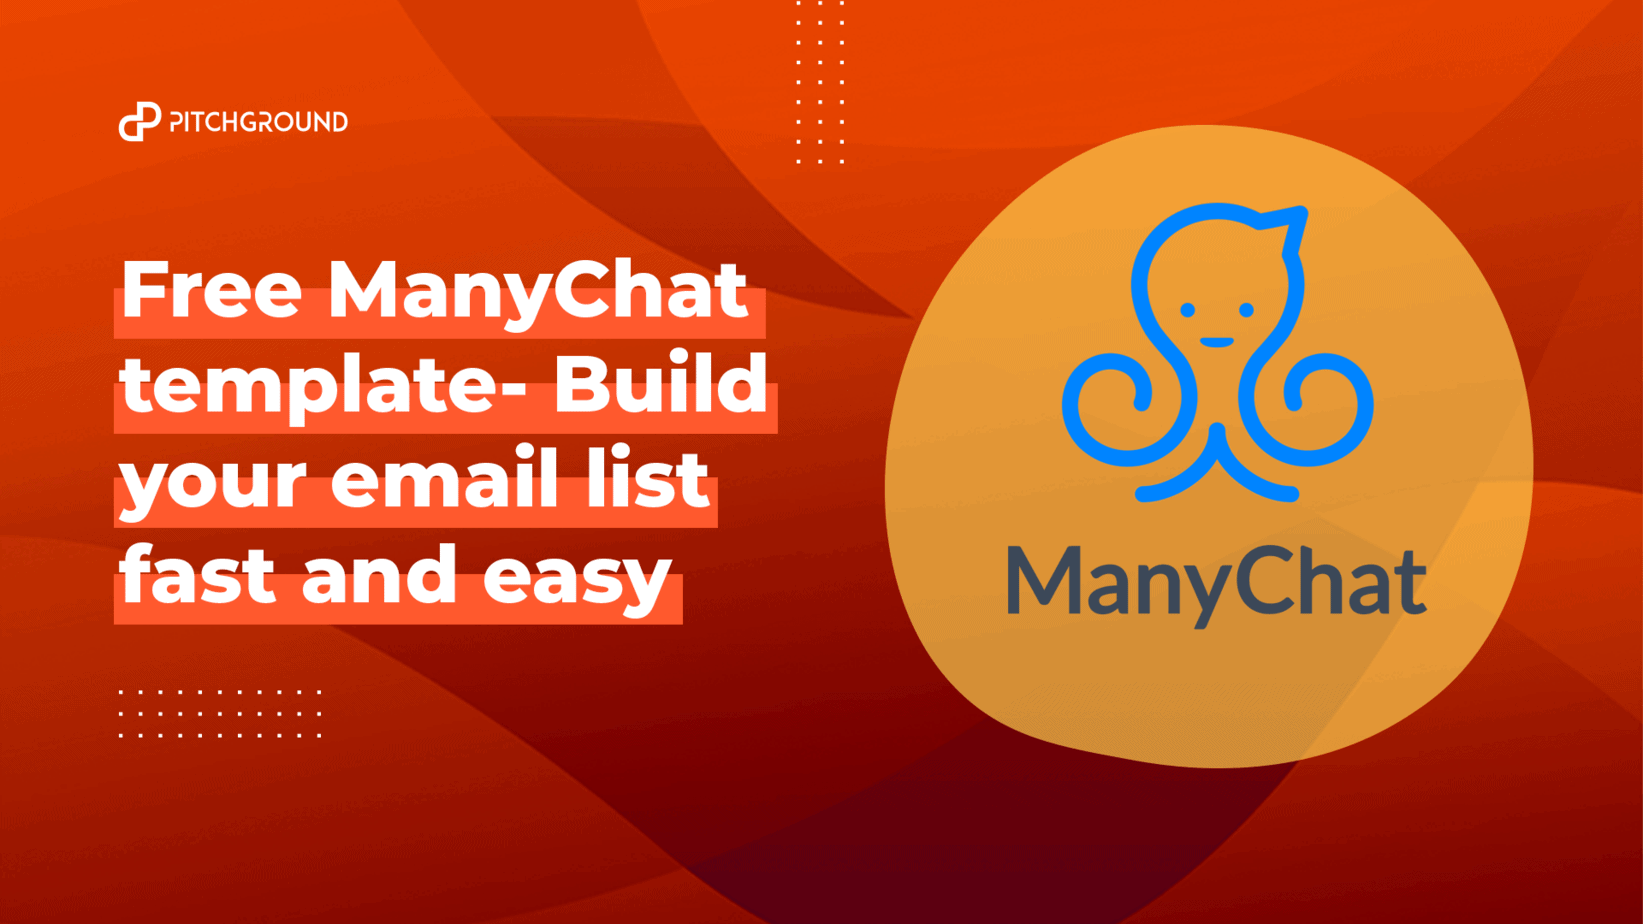 Free Manychat template